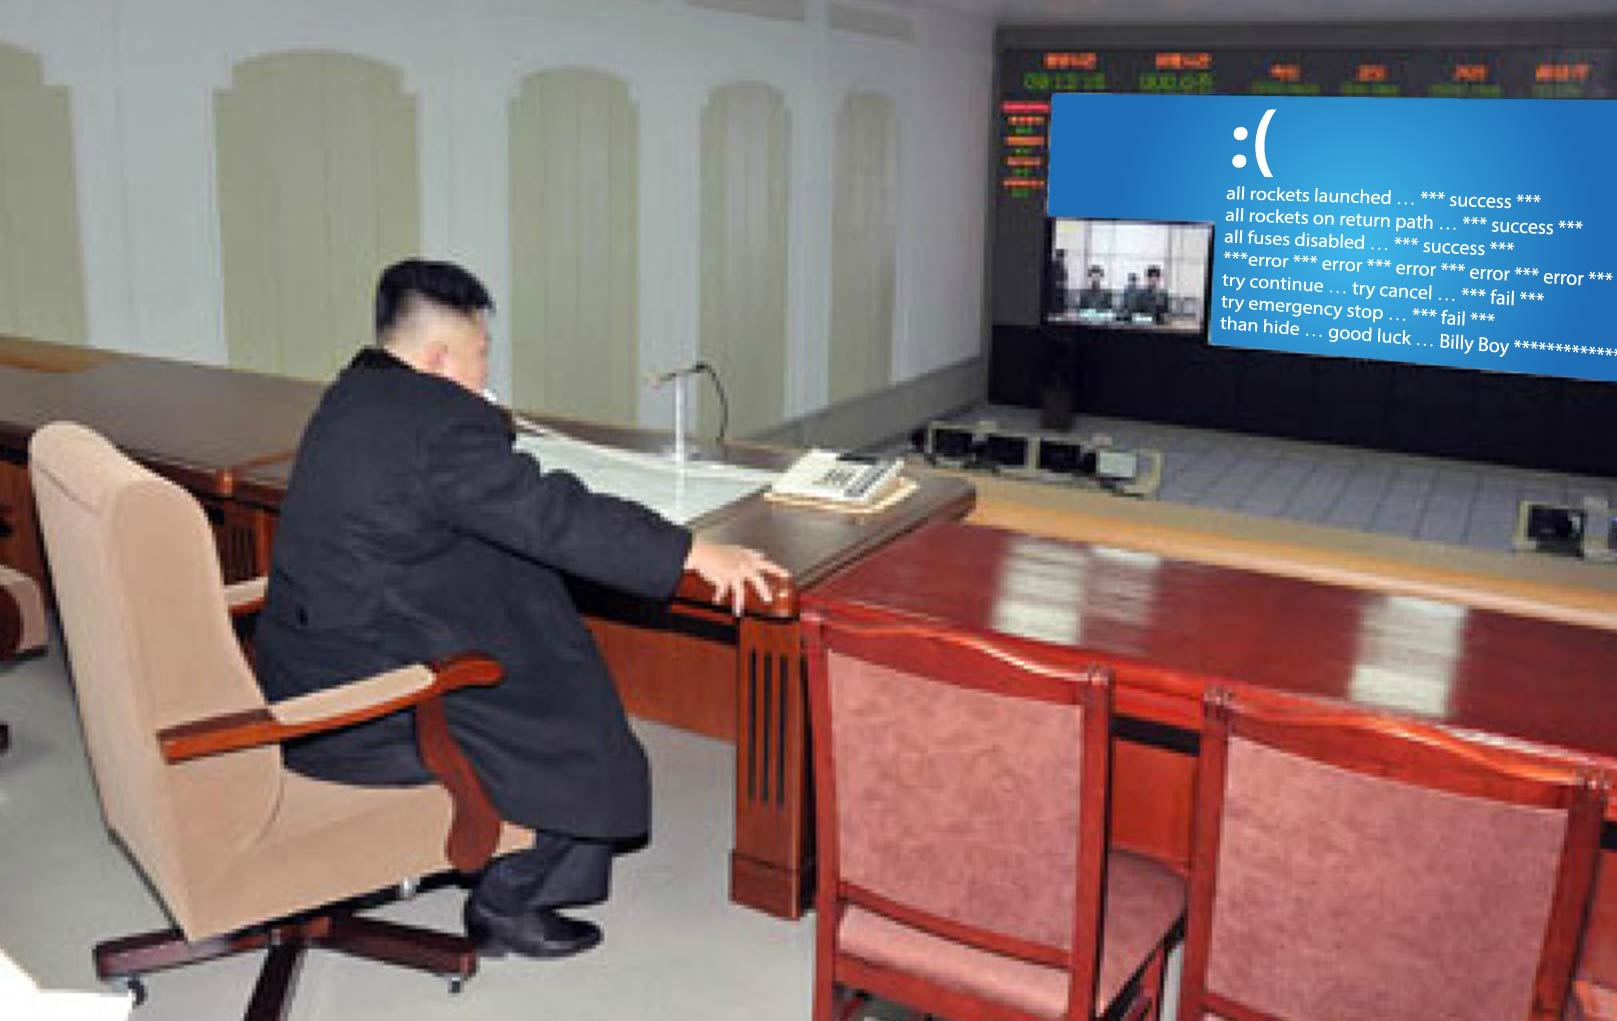 Kim Jong Un Microsoft fail Windows 8 rocket testing northkorea